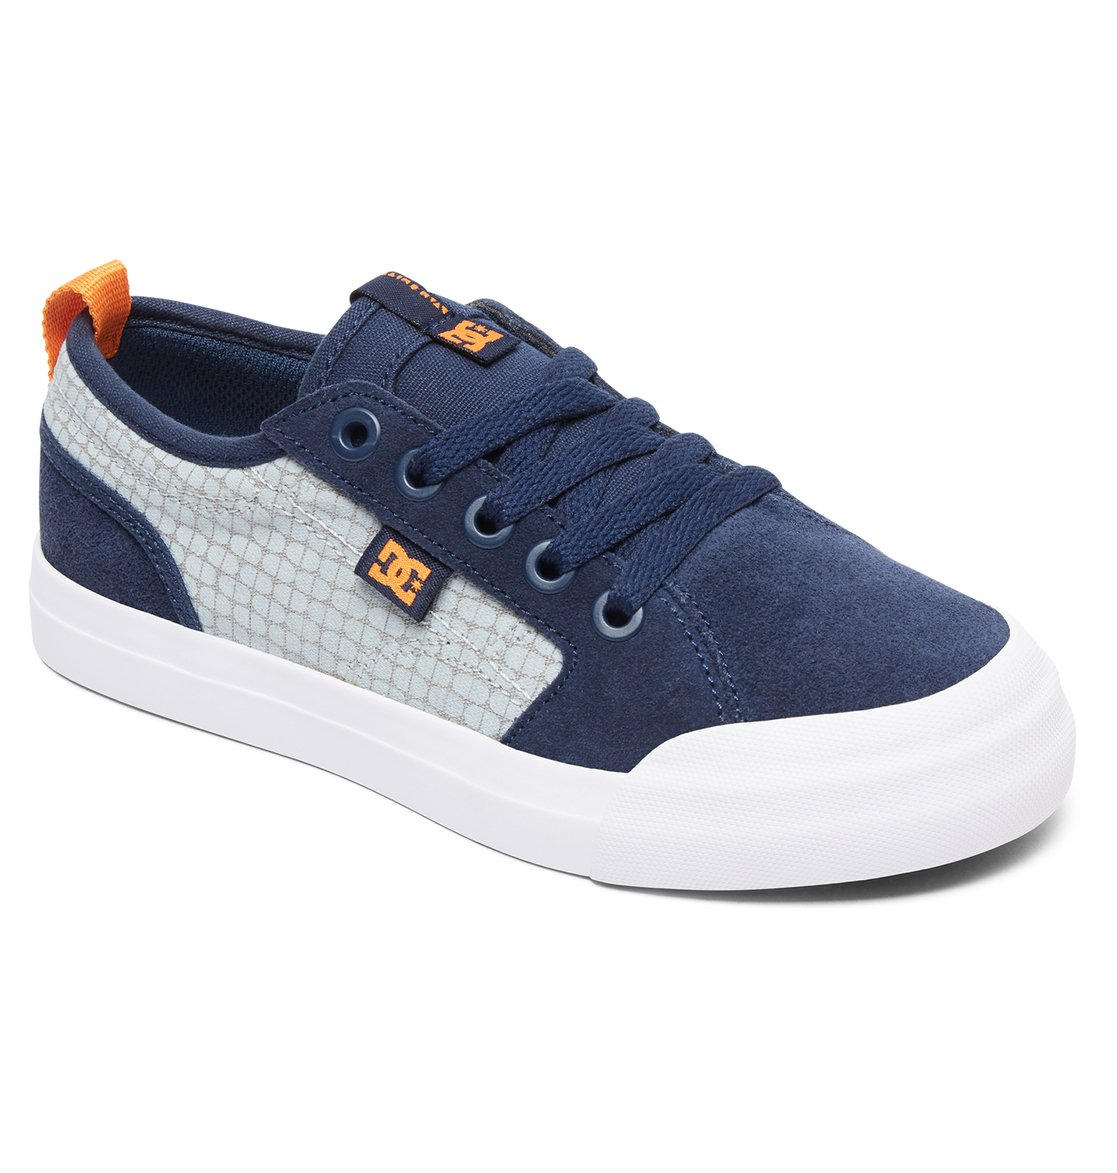 Shoes ADBS300315 DC Shoes™ Kid/'s Evan SE